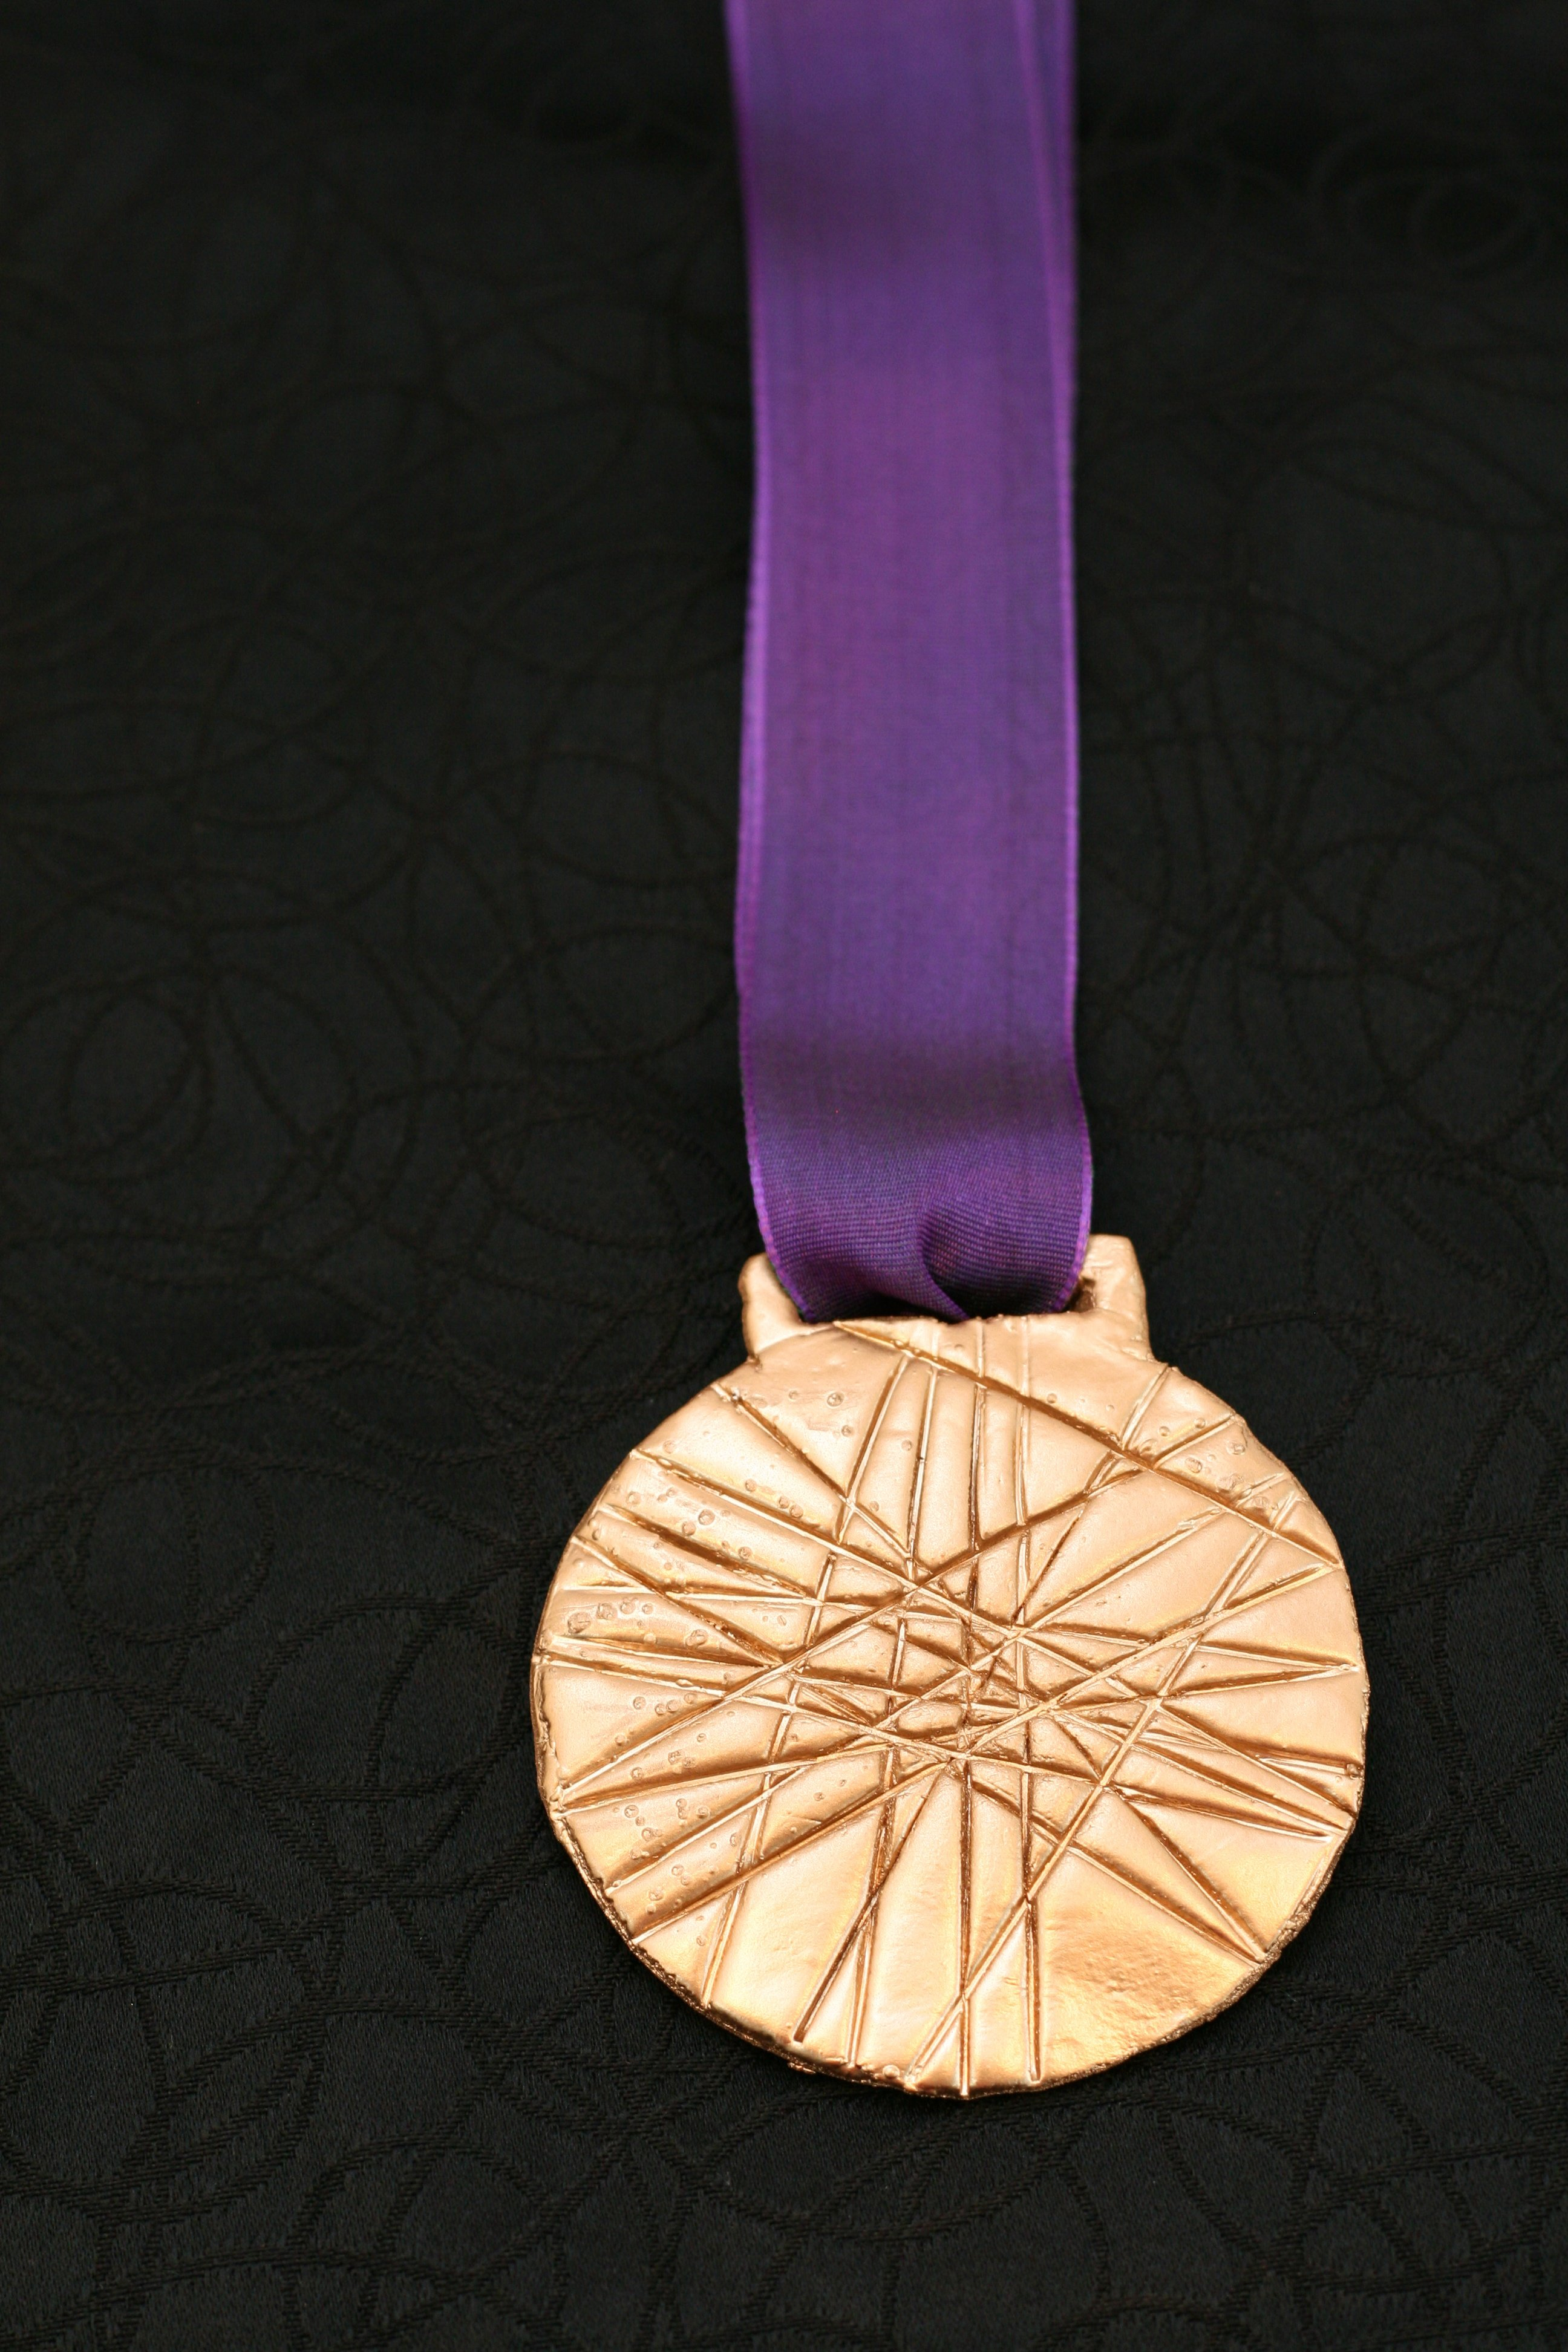 Make a Gold Medal - Paging Supermom